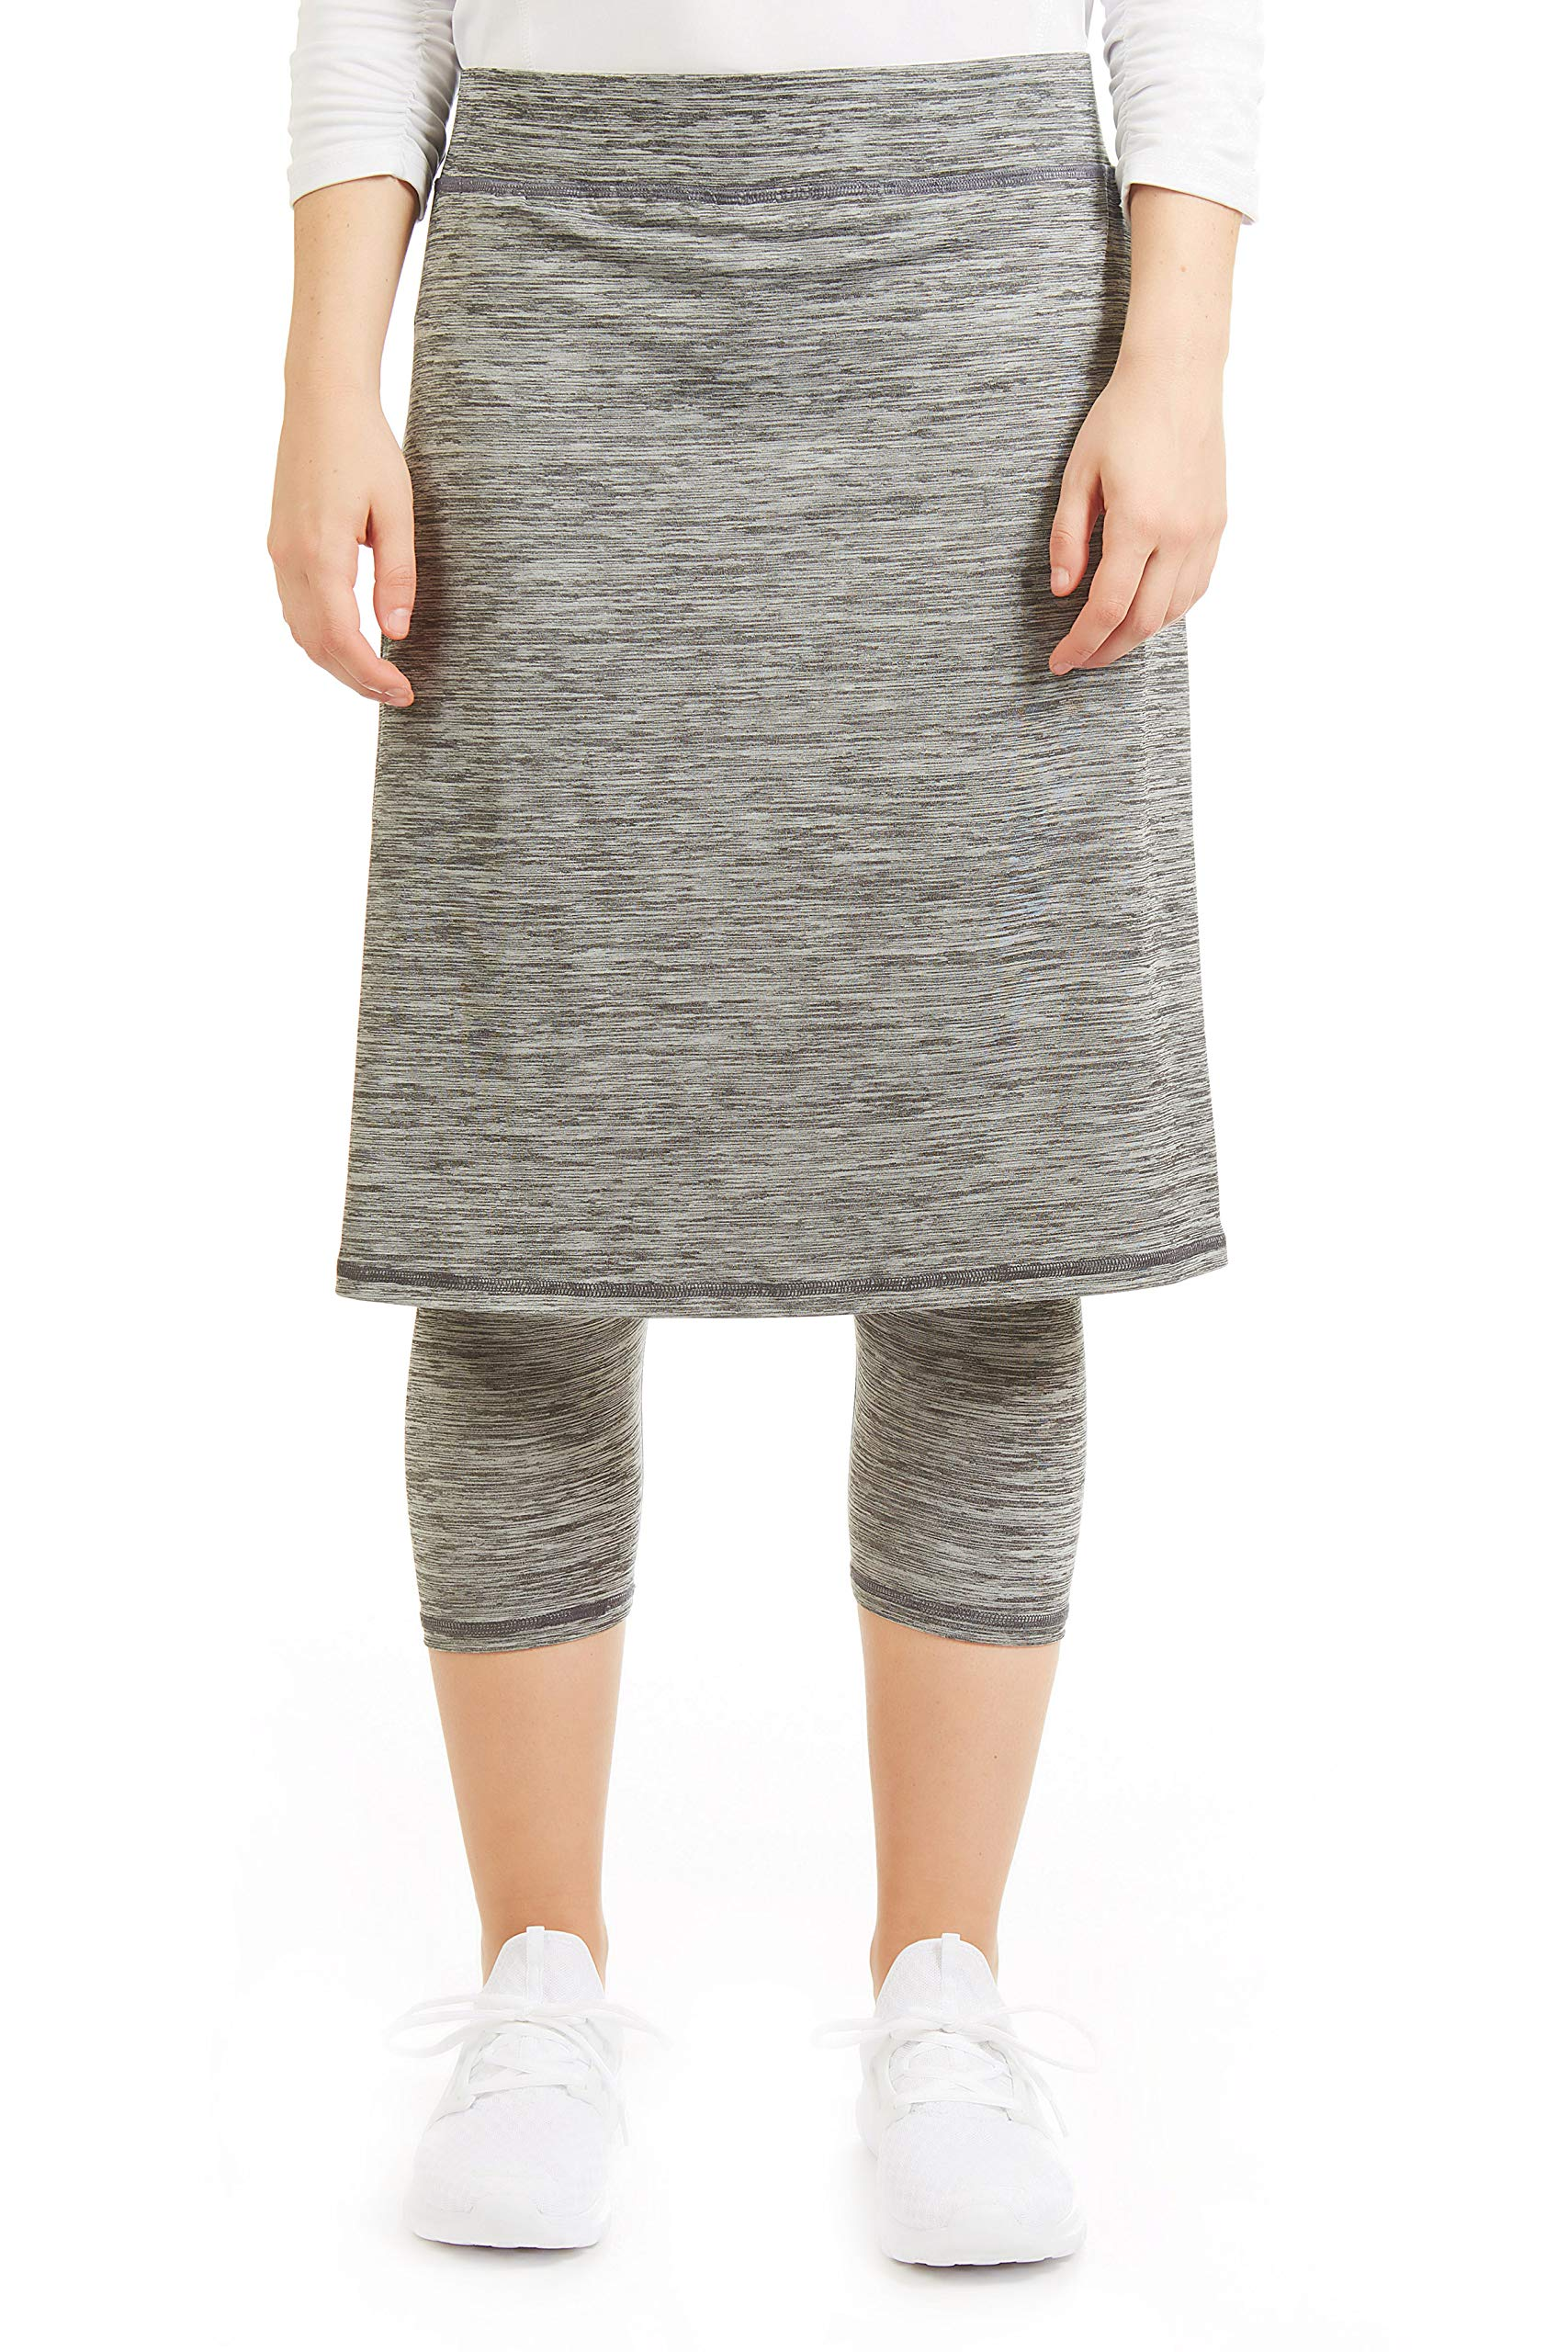 Snoga Athletics Modesty Workout Pencil Skirt with Capri Leggings - Black, S